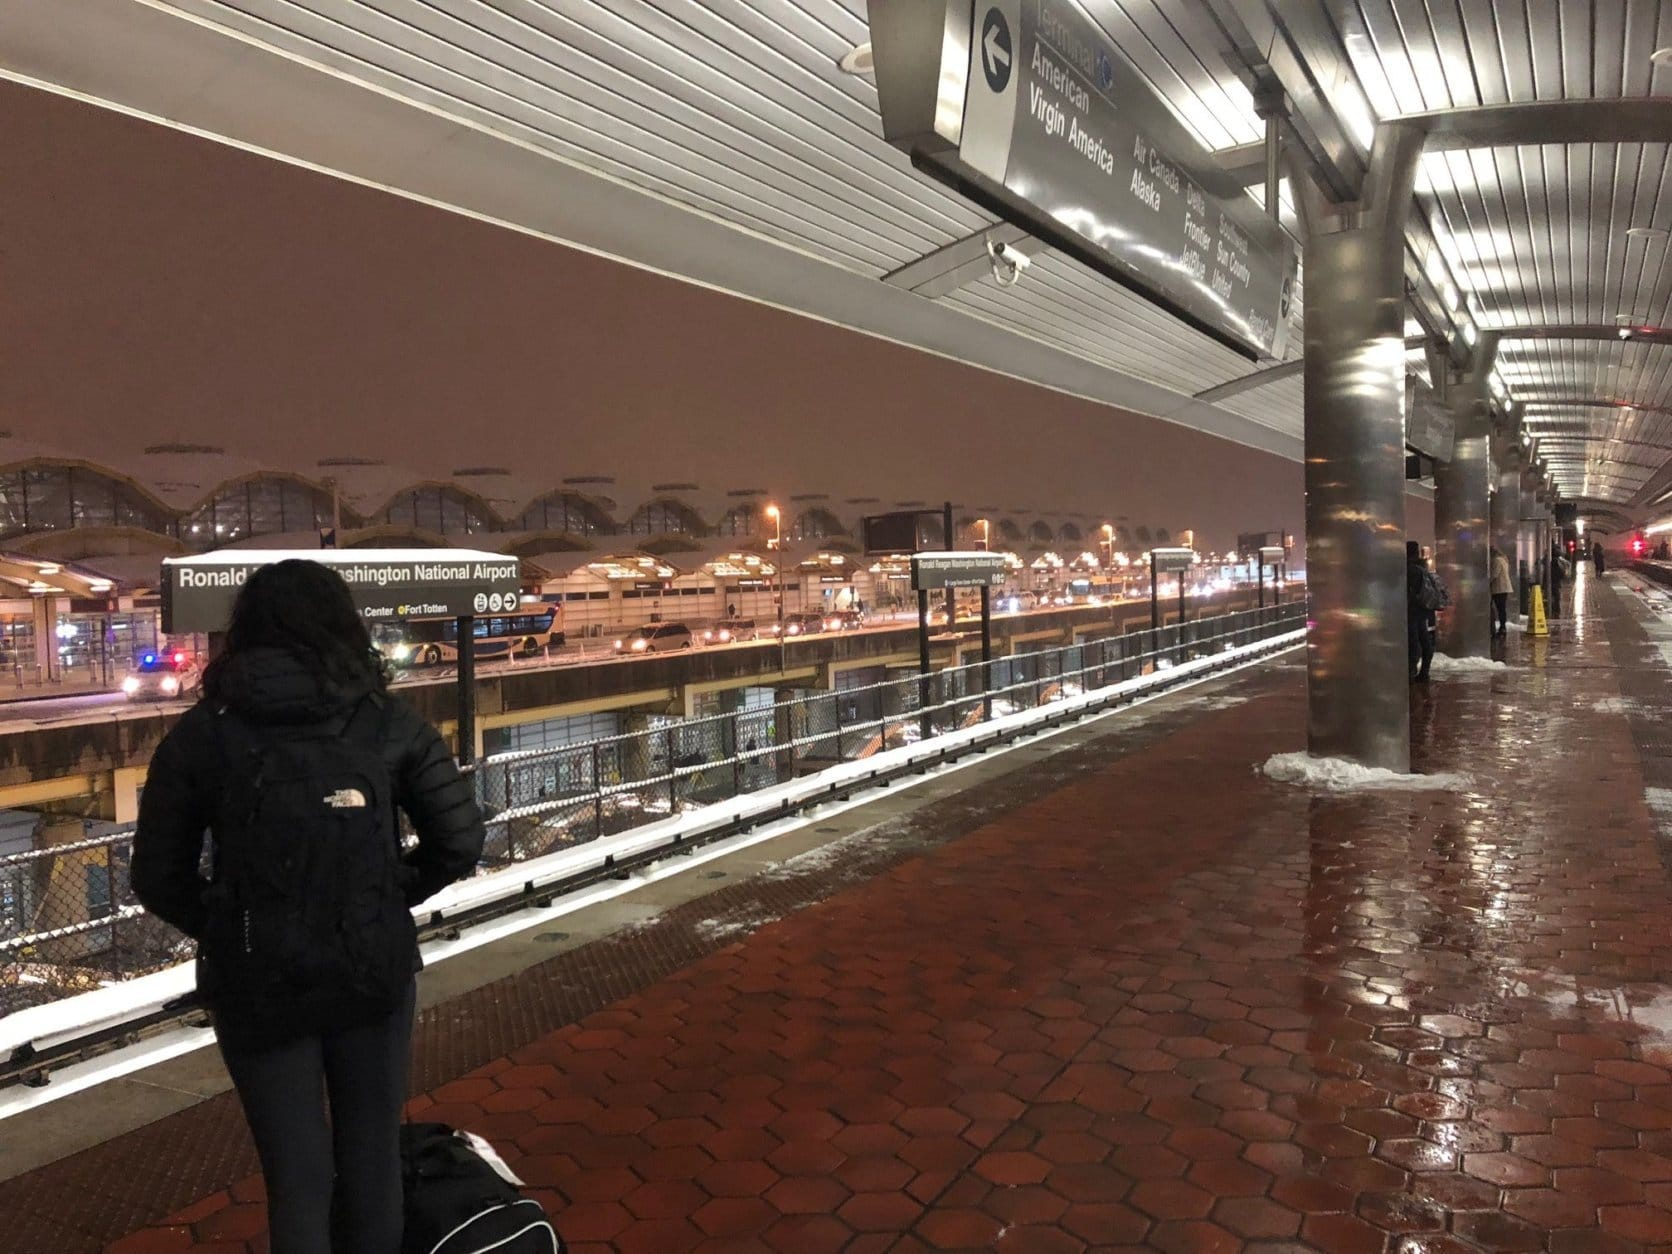 Travelers wait at the Metro station as snow falls Sunday around Reagan National Airport. (WTOP/Max Smith)